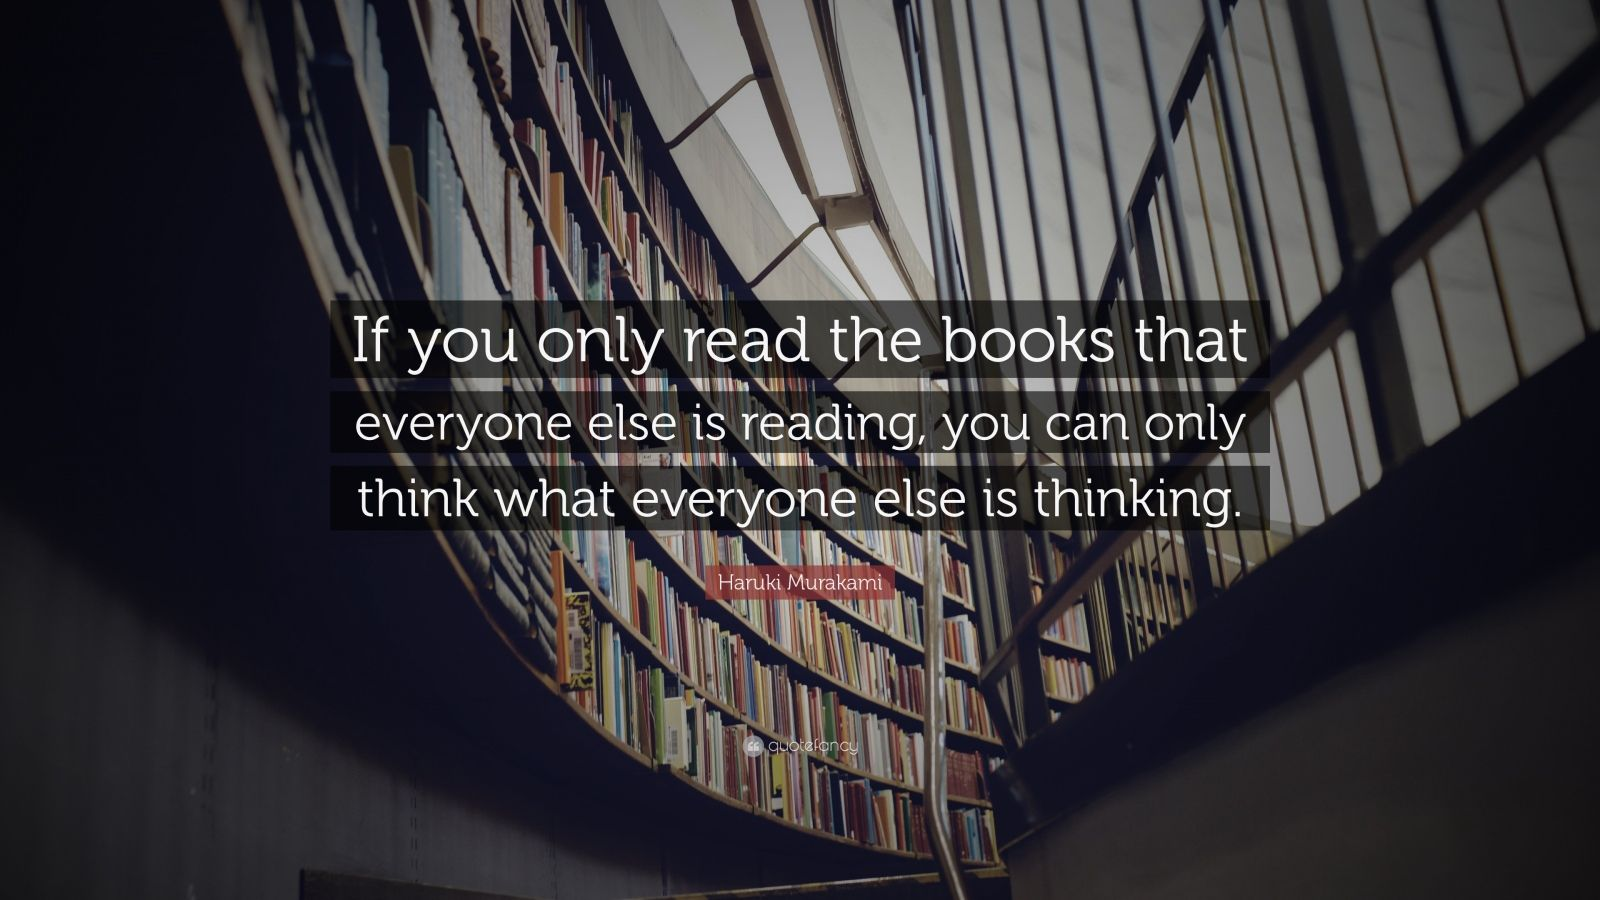 "Quotes About Books And Reading: ""If you only read the books that everyone else is reading, you can only think what everyone else is thinking."" — Haruki Murakami"